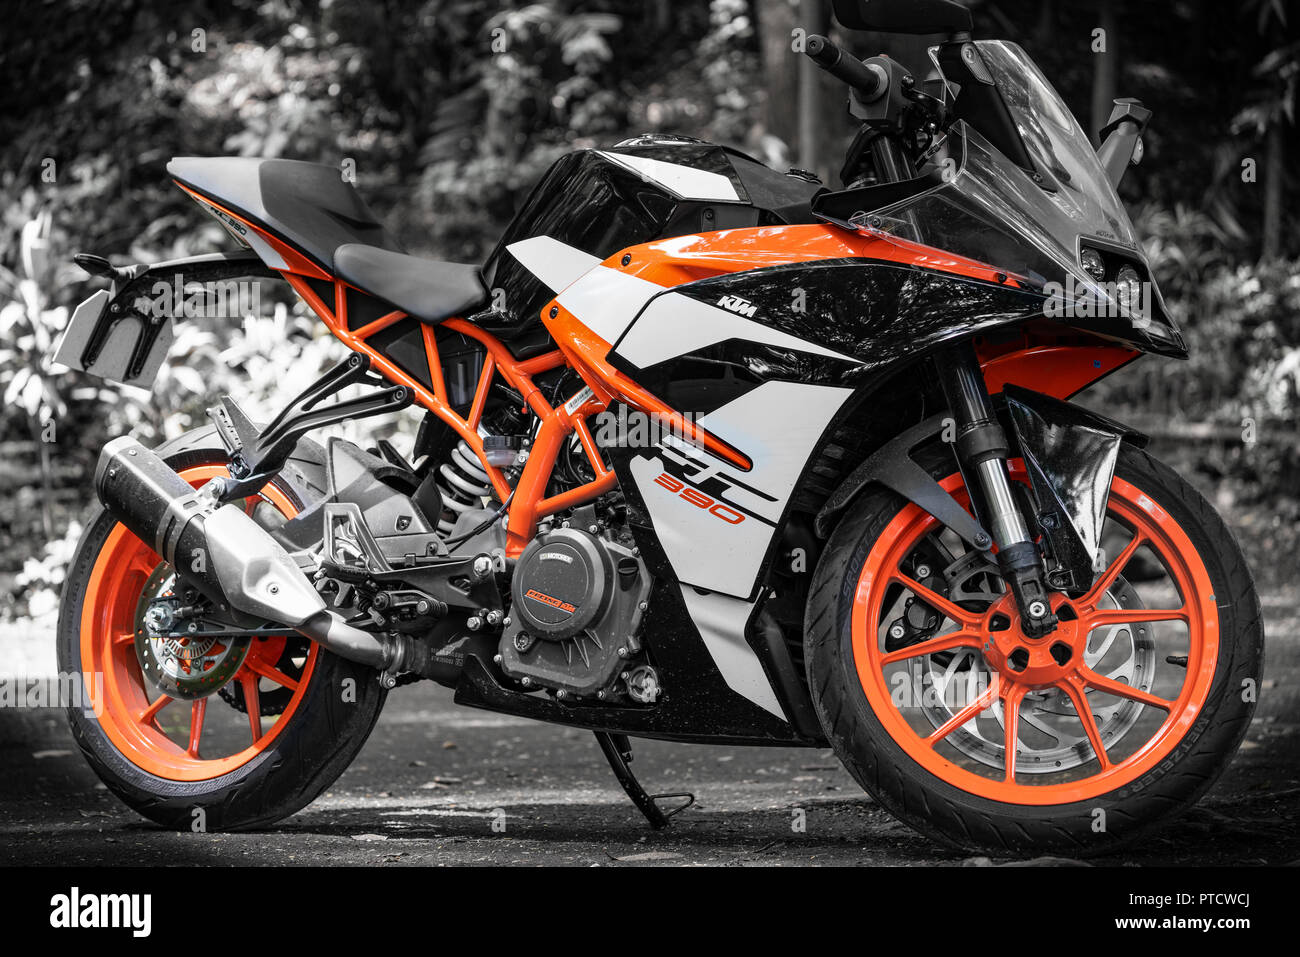 KTM RC390 Motorcycle - Stock Image